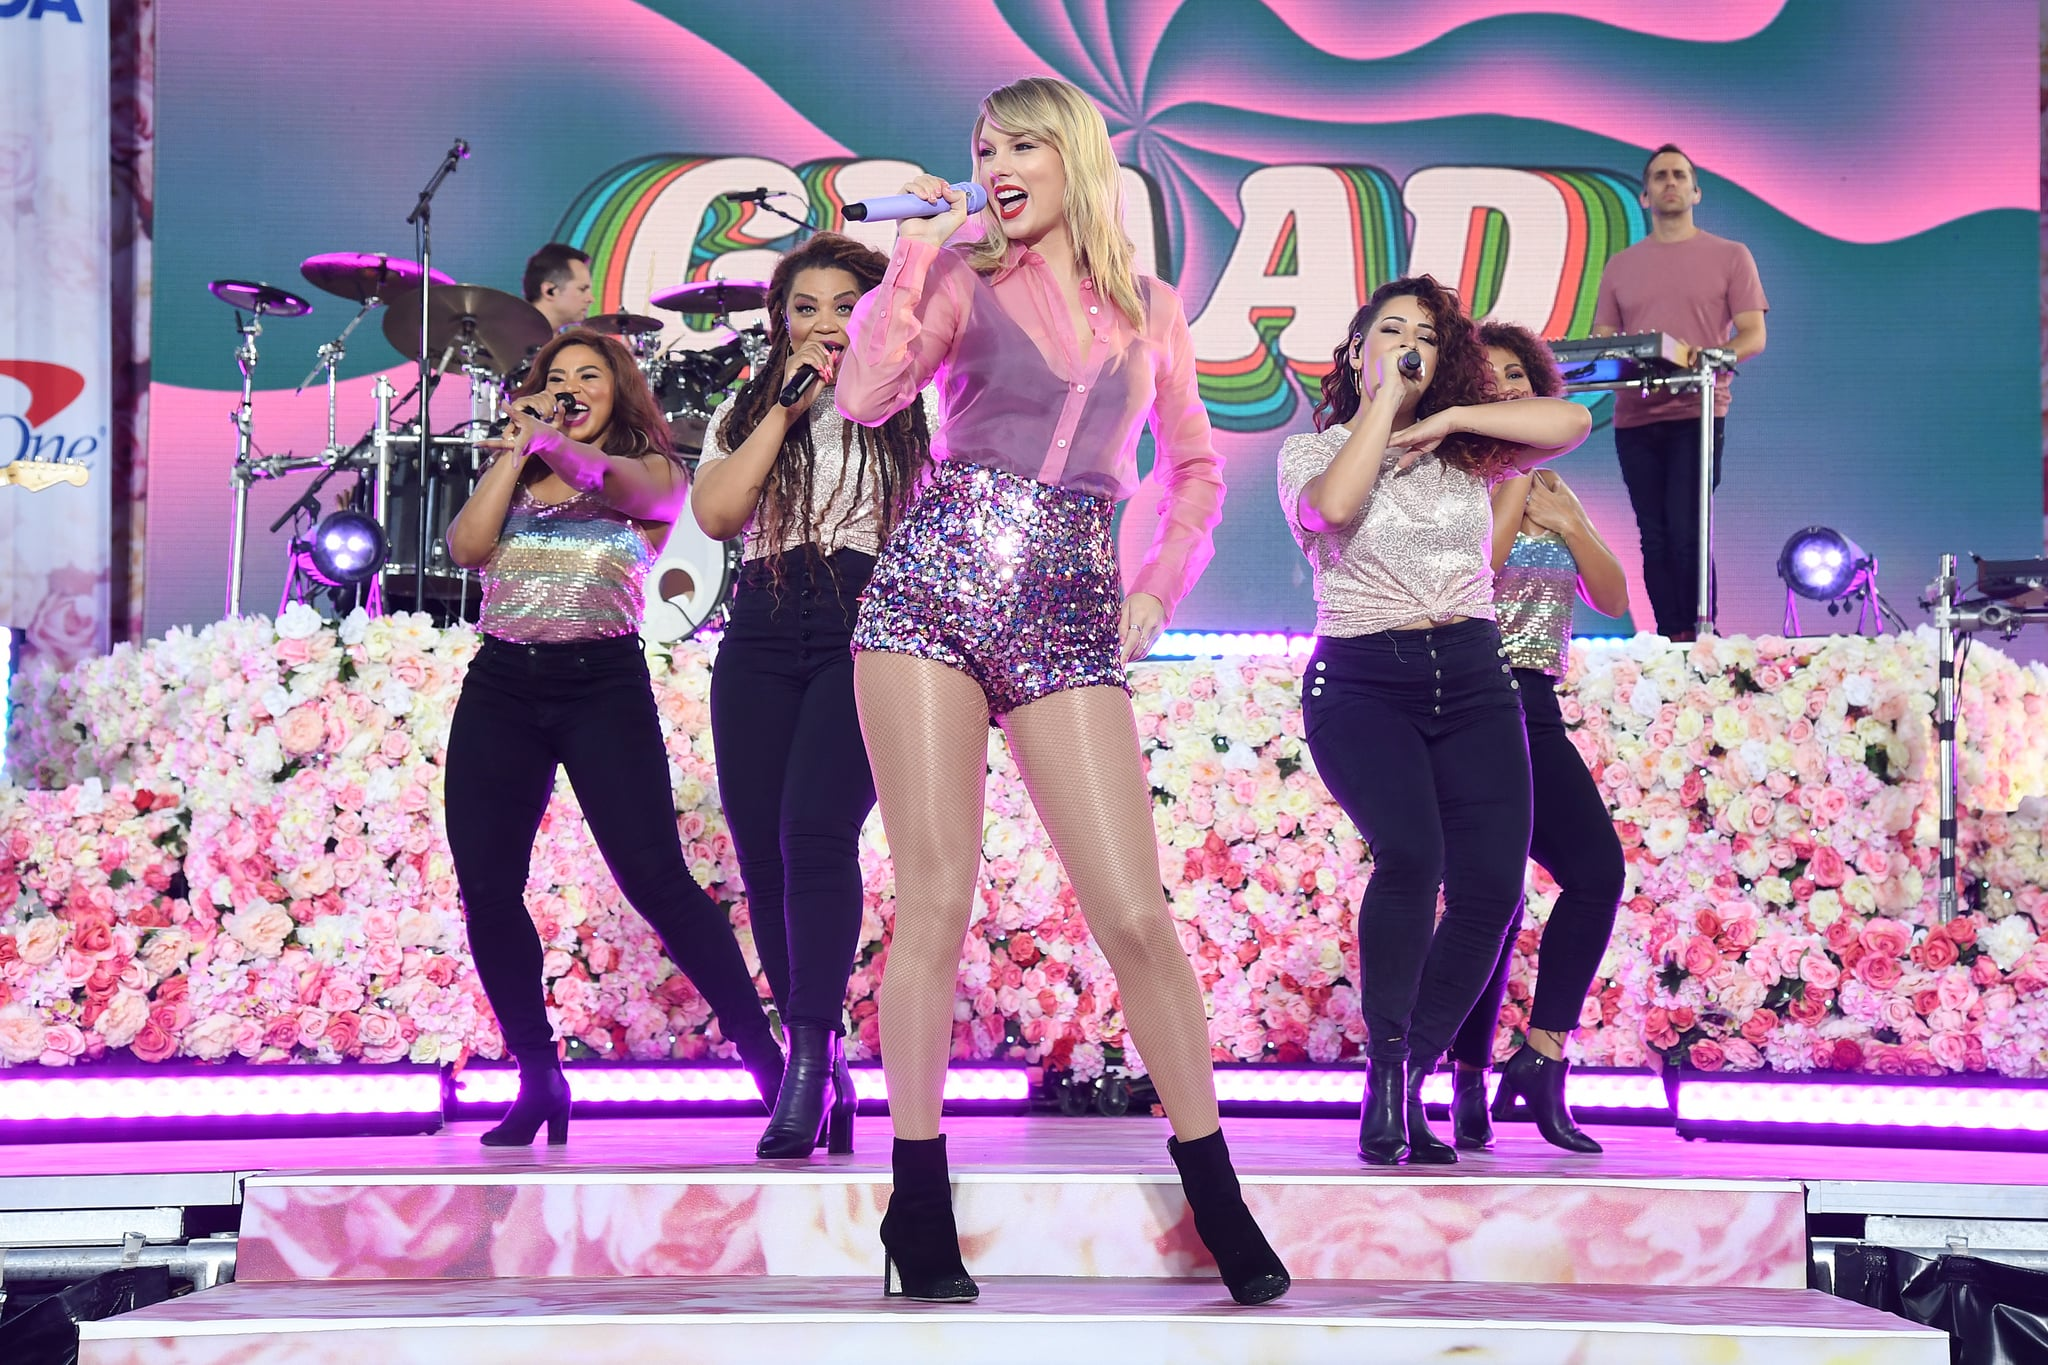 NEW YORK, NEW YORK - AUGUST 22: Taylor Swift performs on ABC's